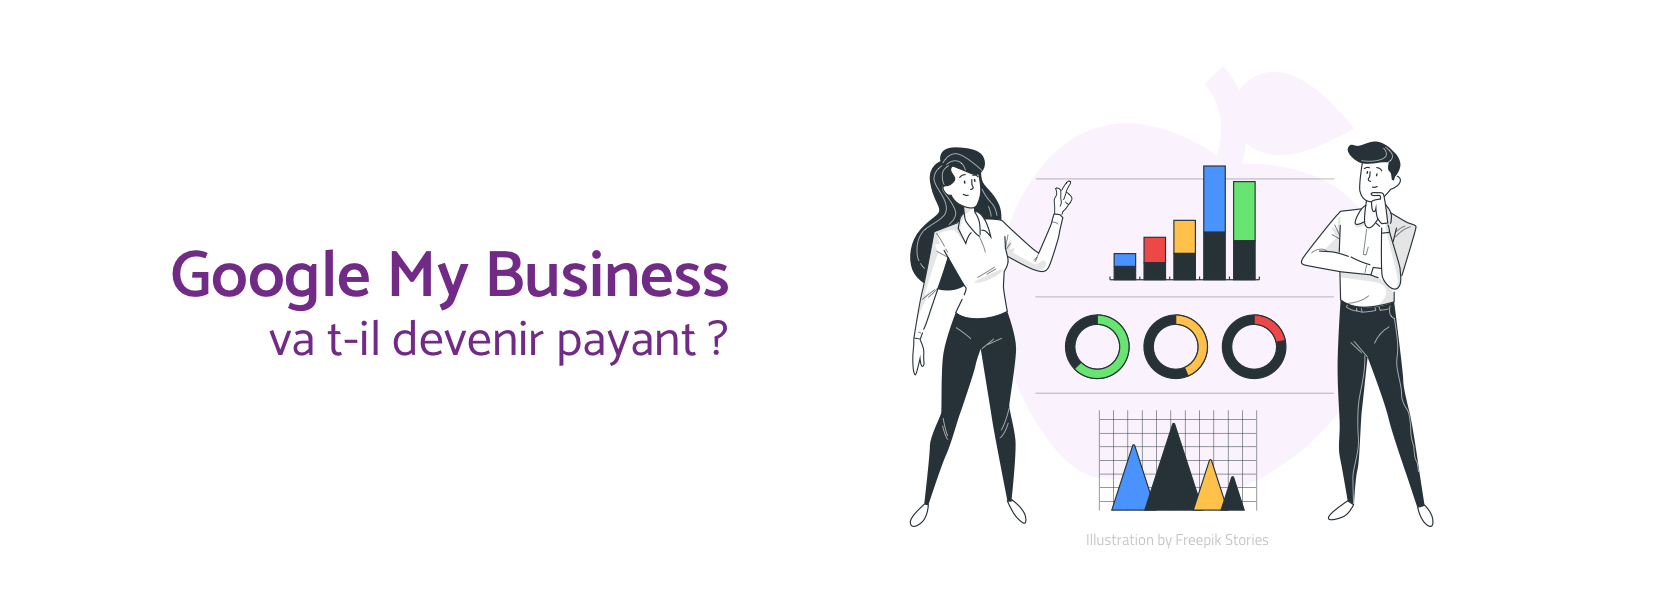 Google My Business va t-il devenir payant ?